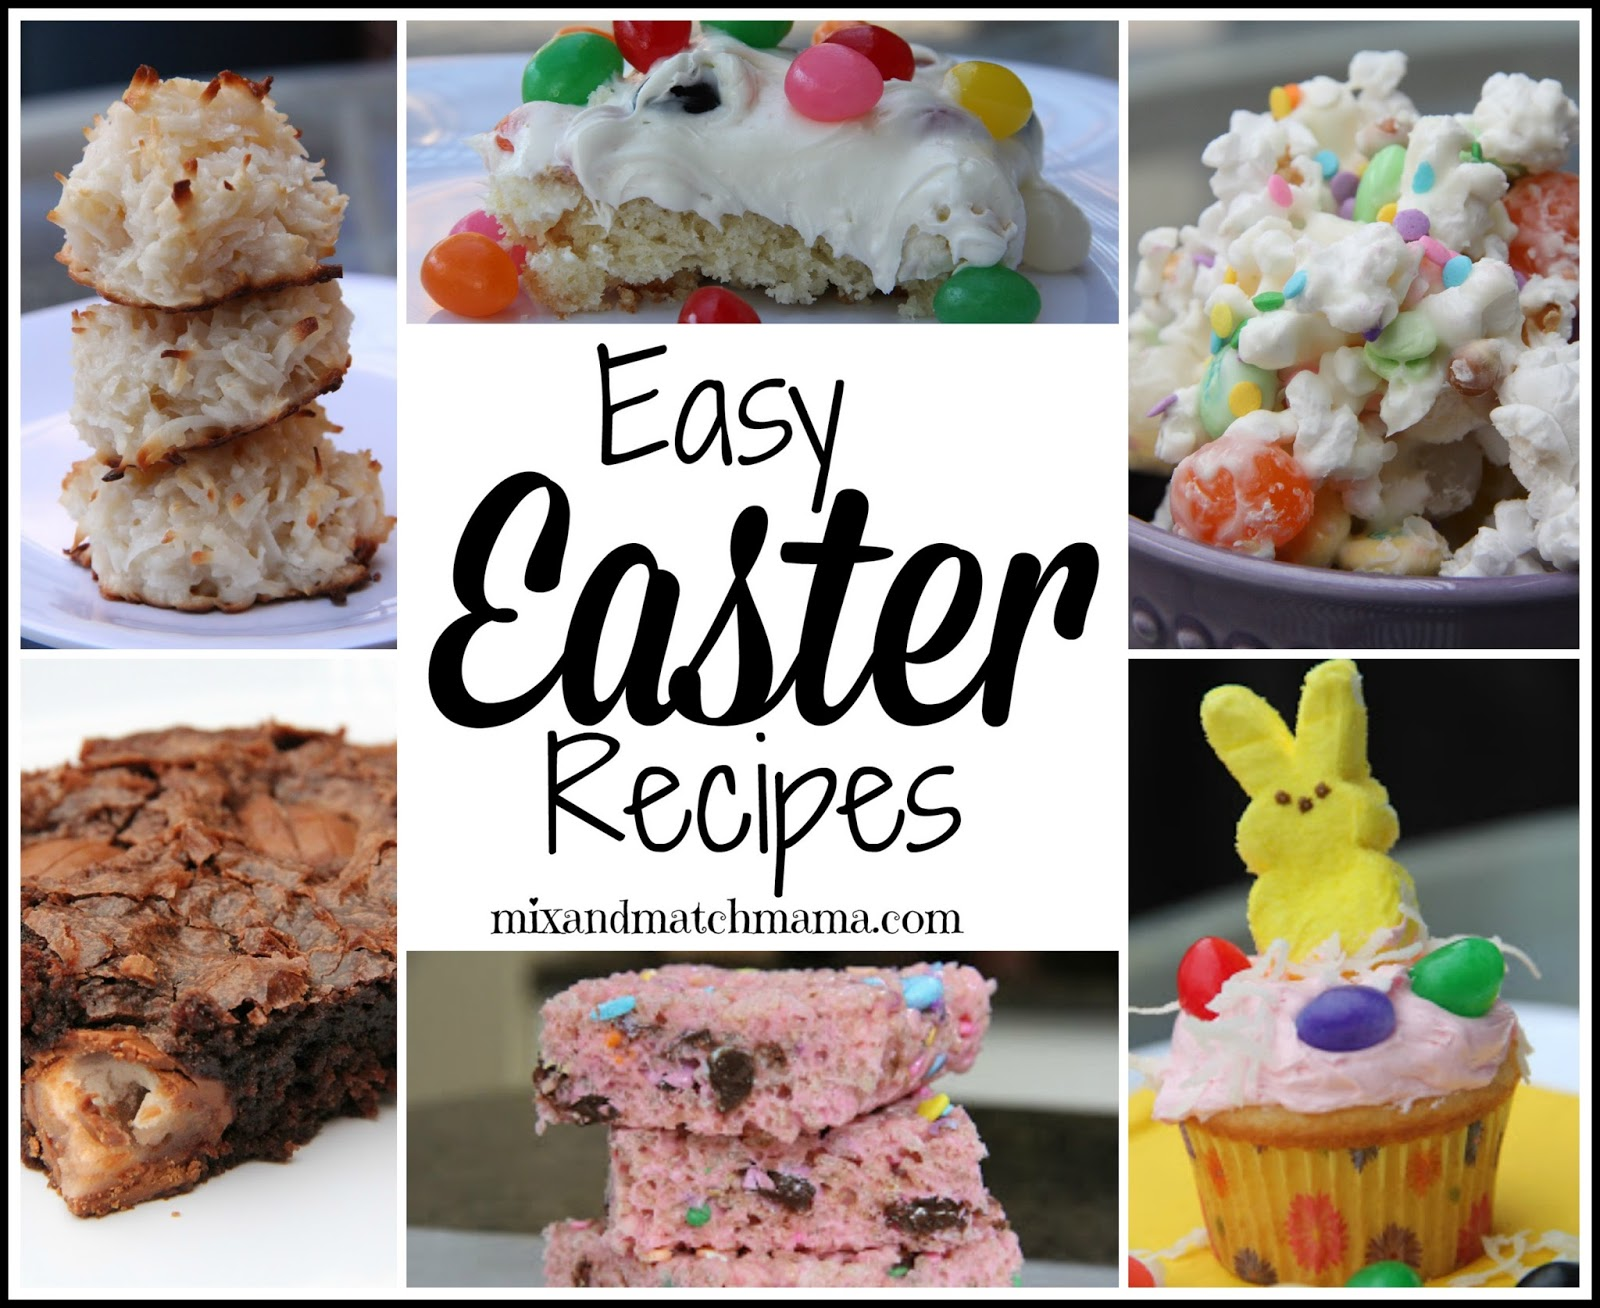 Easy easter recipes mix and match mama for Quick and easy easter treats recipes